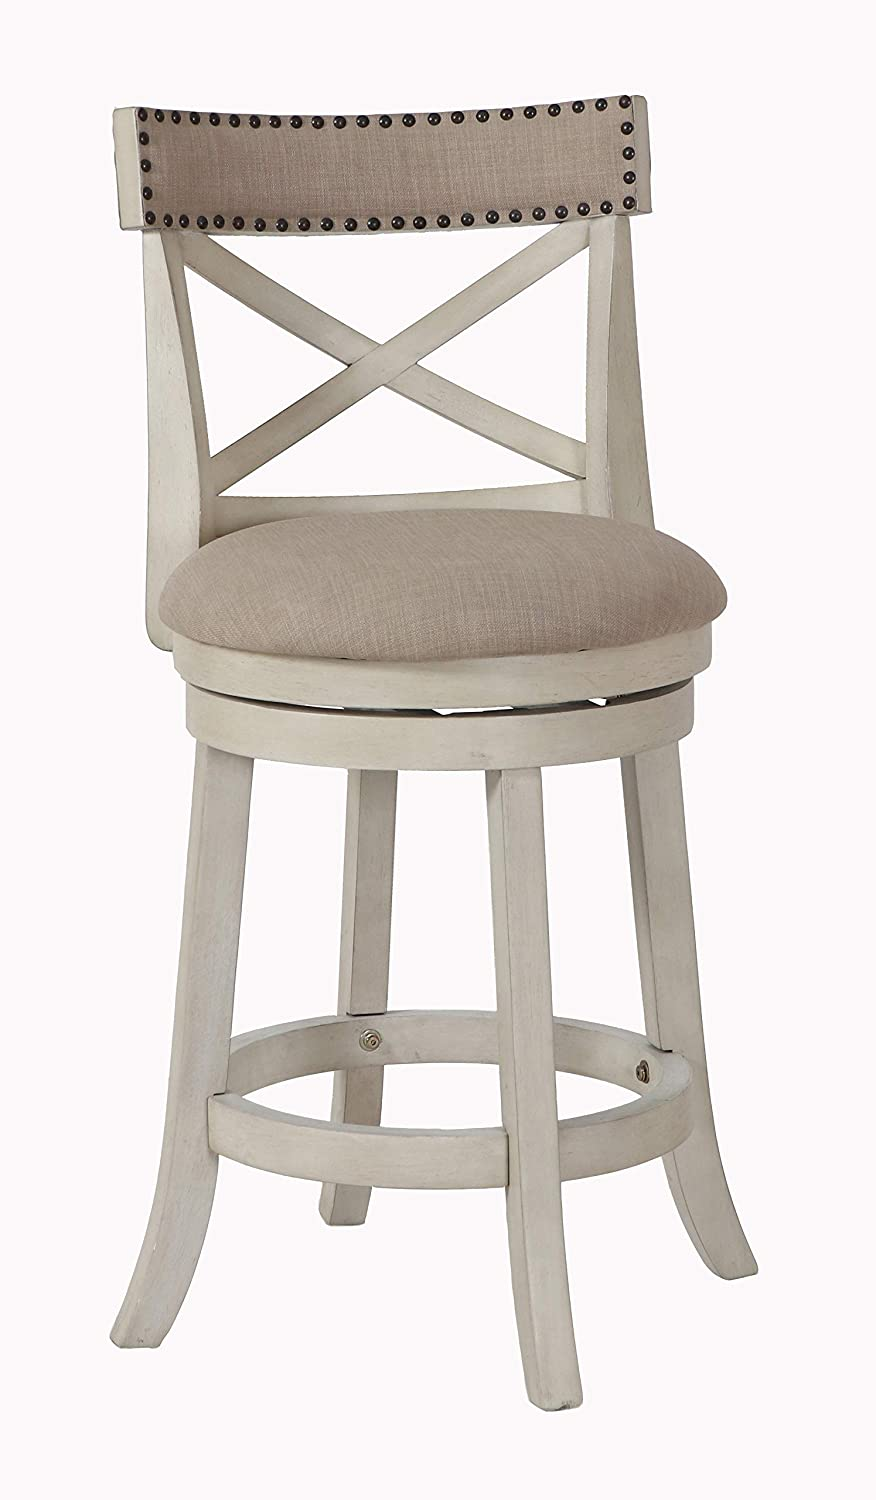 New Classic Furniture York Fabric Swivel Counter Stool, Antique White, 24-Inch